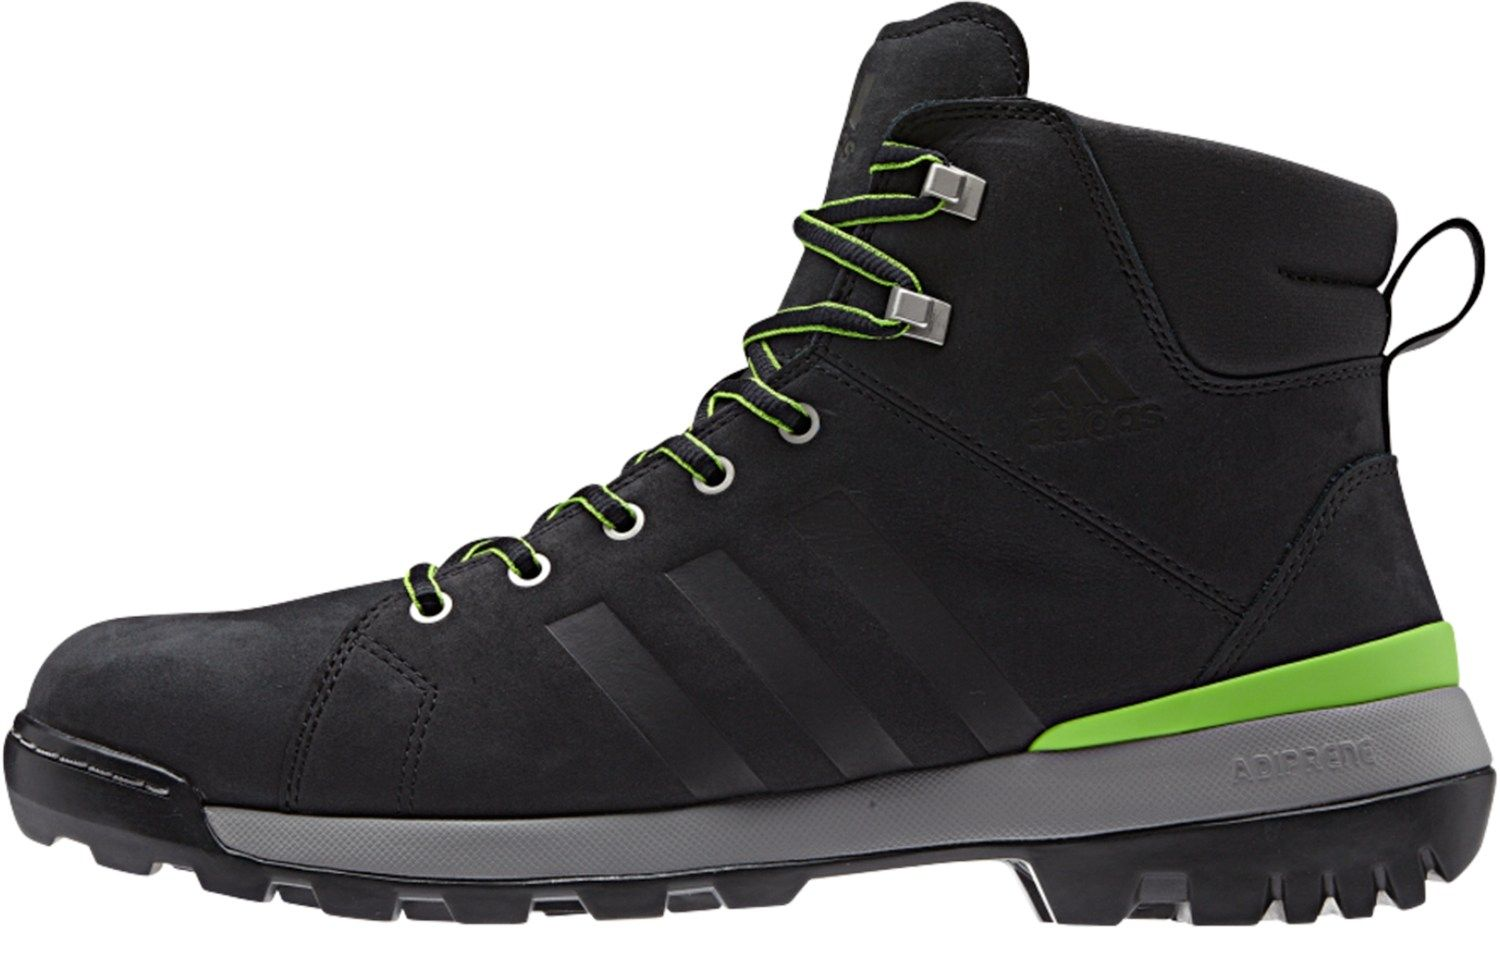 Adidas Male Trail Cruiser Mid Hiking Shoes Men's